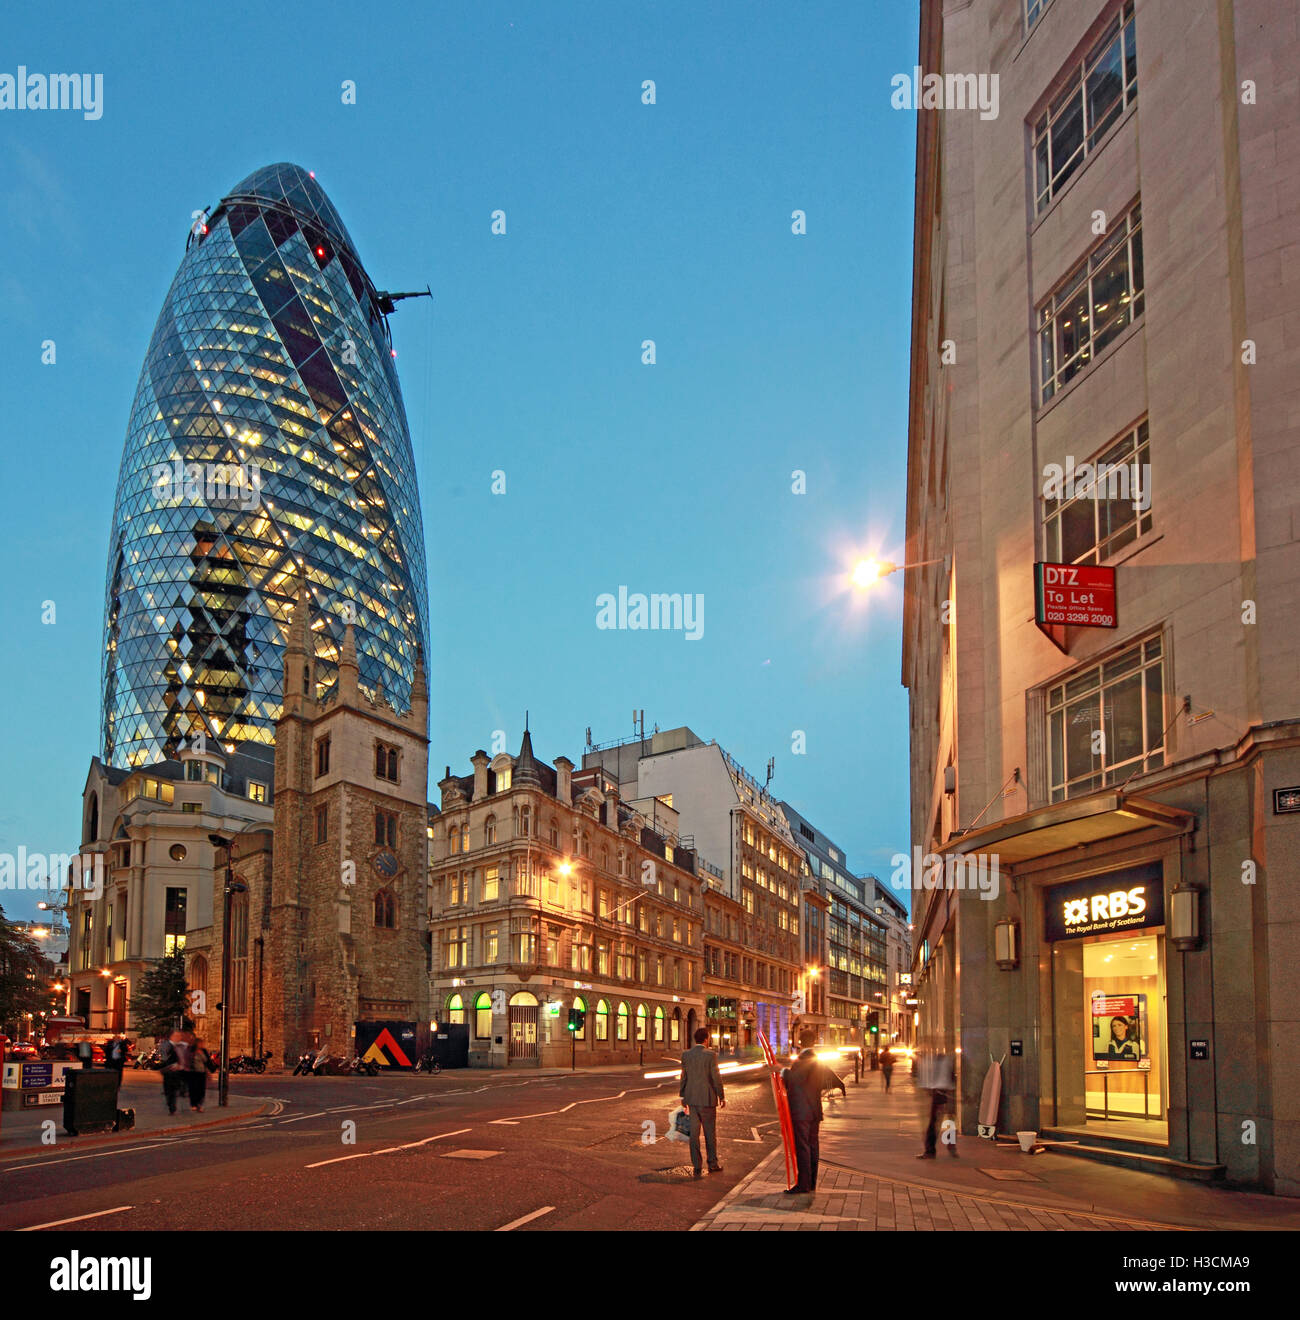 Office,space,gerkin,Marys,London,England,UK,at,Dusk,finance,financial,money,district,commercial,skyscraper,EC3A,8BF,services,passport,passporting,Brexit,EU,30,St,Mary,Axe,The Gherkin,Swiss Re Building,City Of London,EC3A 8BF,EU Passporting,GoTonySmith,@HotpixUK,Tony,Smith,different,unique,former,sites,of,the,Norman,Foster,cityscape,architecture,lit,illuminated,sir,outdoor,Aldgate,travel,tourist,construction,contemporary,Londons,Skanska,skyscraper,symbol,futuristic,insurance,urban,high,rise,highrise,long,exposure,Buy Pictures of,Buy Images Of,Images of,Stock Images,Tony Smith,Photo of,Financial District,Baltic Exchange,Chamber of Shipping,High-rise,Long Exposure